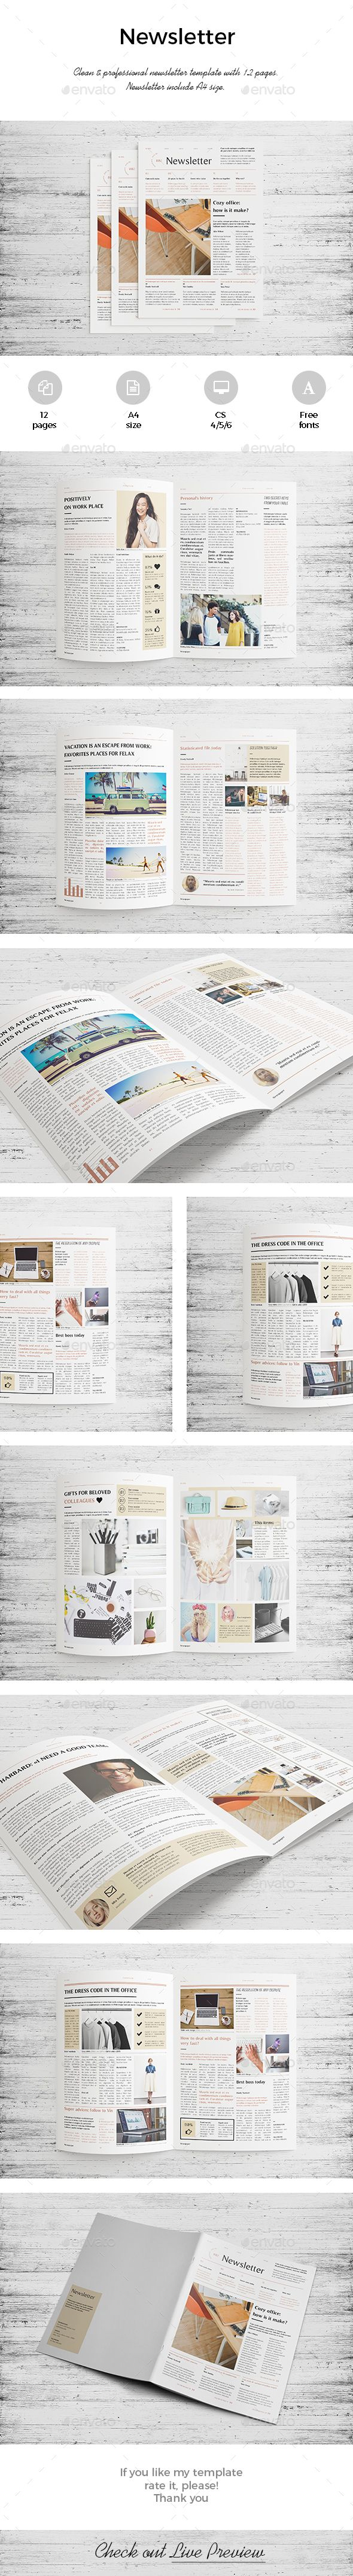 Newsletter Corporate 12 Pages Template InDesign INDD